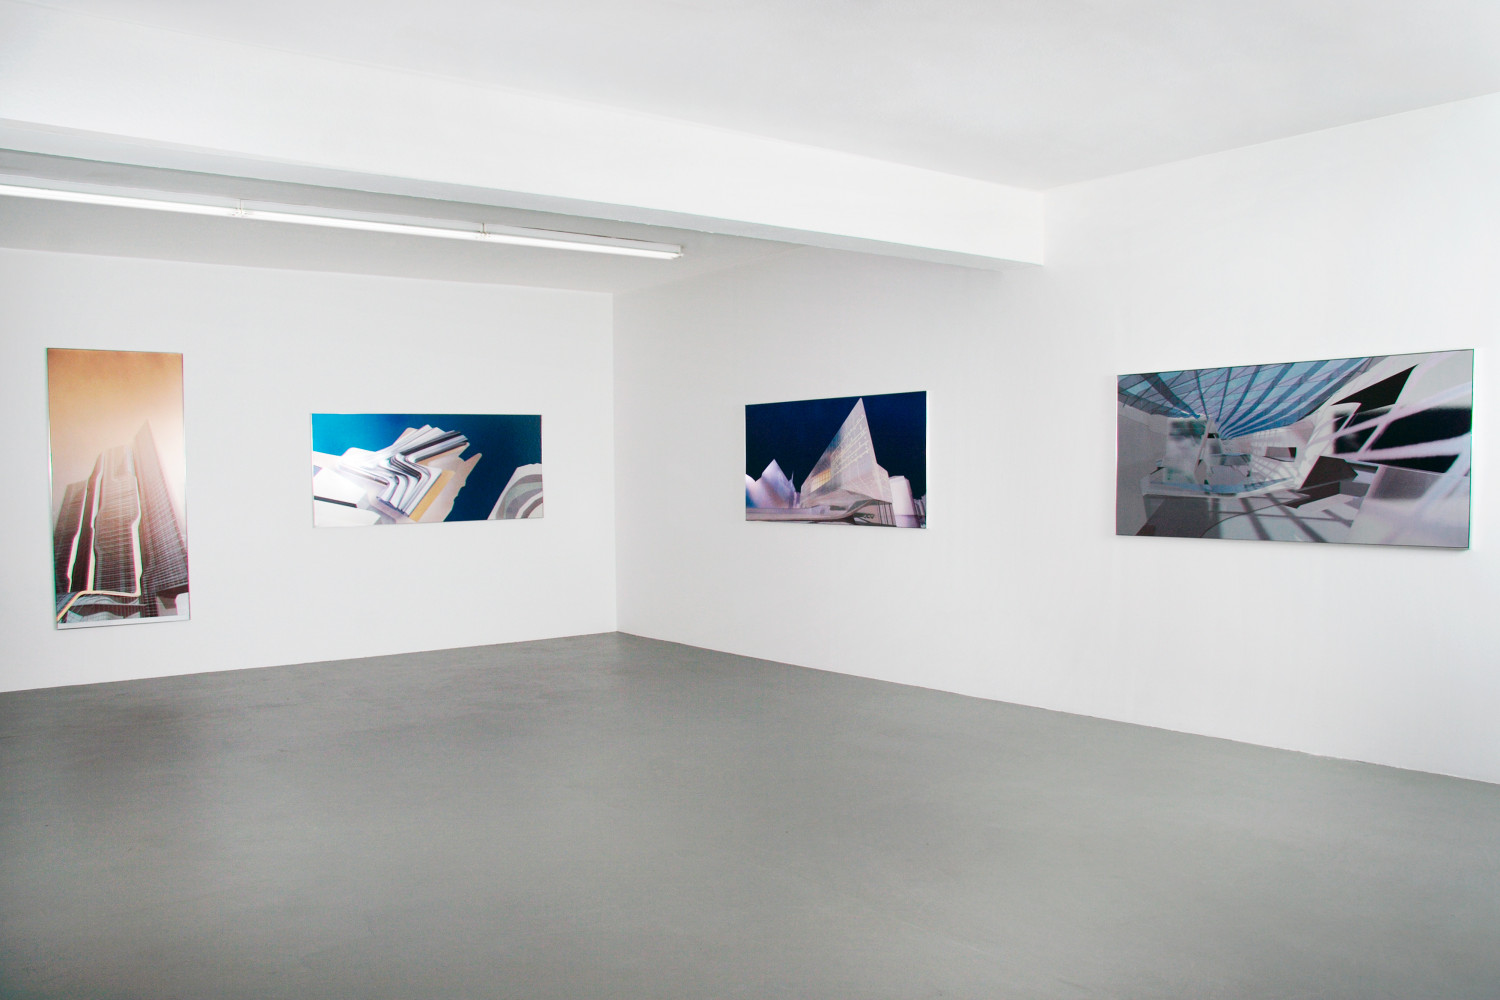 Zaha Hadid, 'Silver paintings', Installation view, 2005